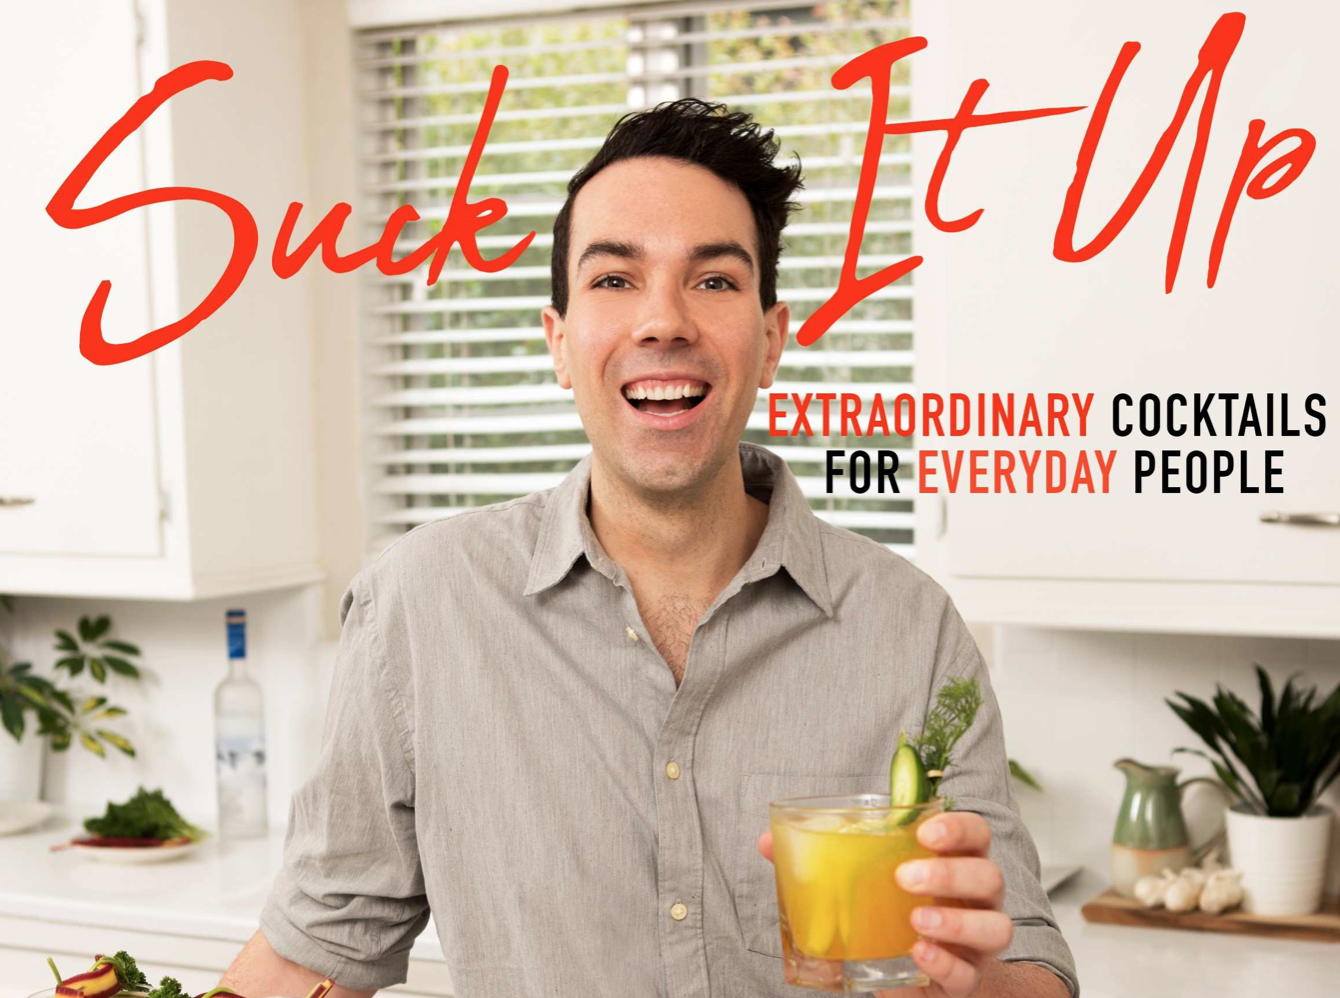 <em>Suck It Up</em> is a cocktail recipe book that's so relatable, you'll feel like you're mixing mimosas with your BFF